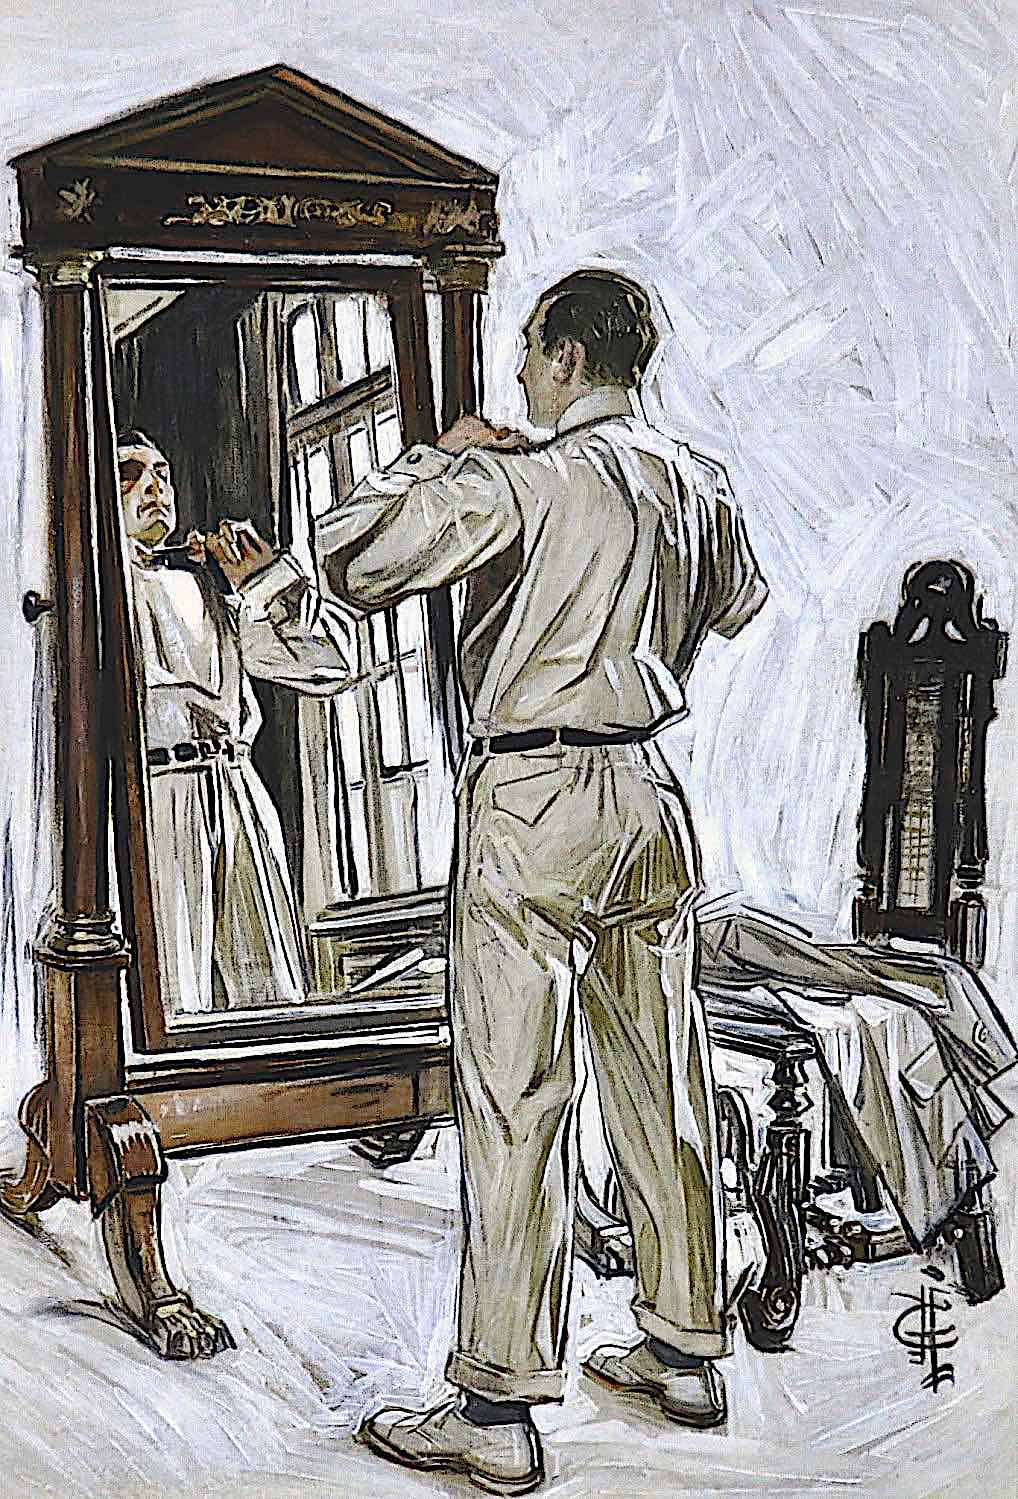 an illustration by Joseph Christian Leyendecker of a man dressing in white clothes with a mirror